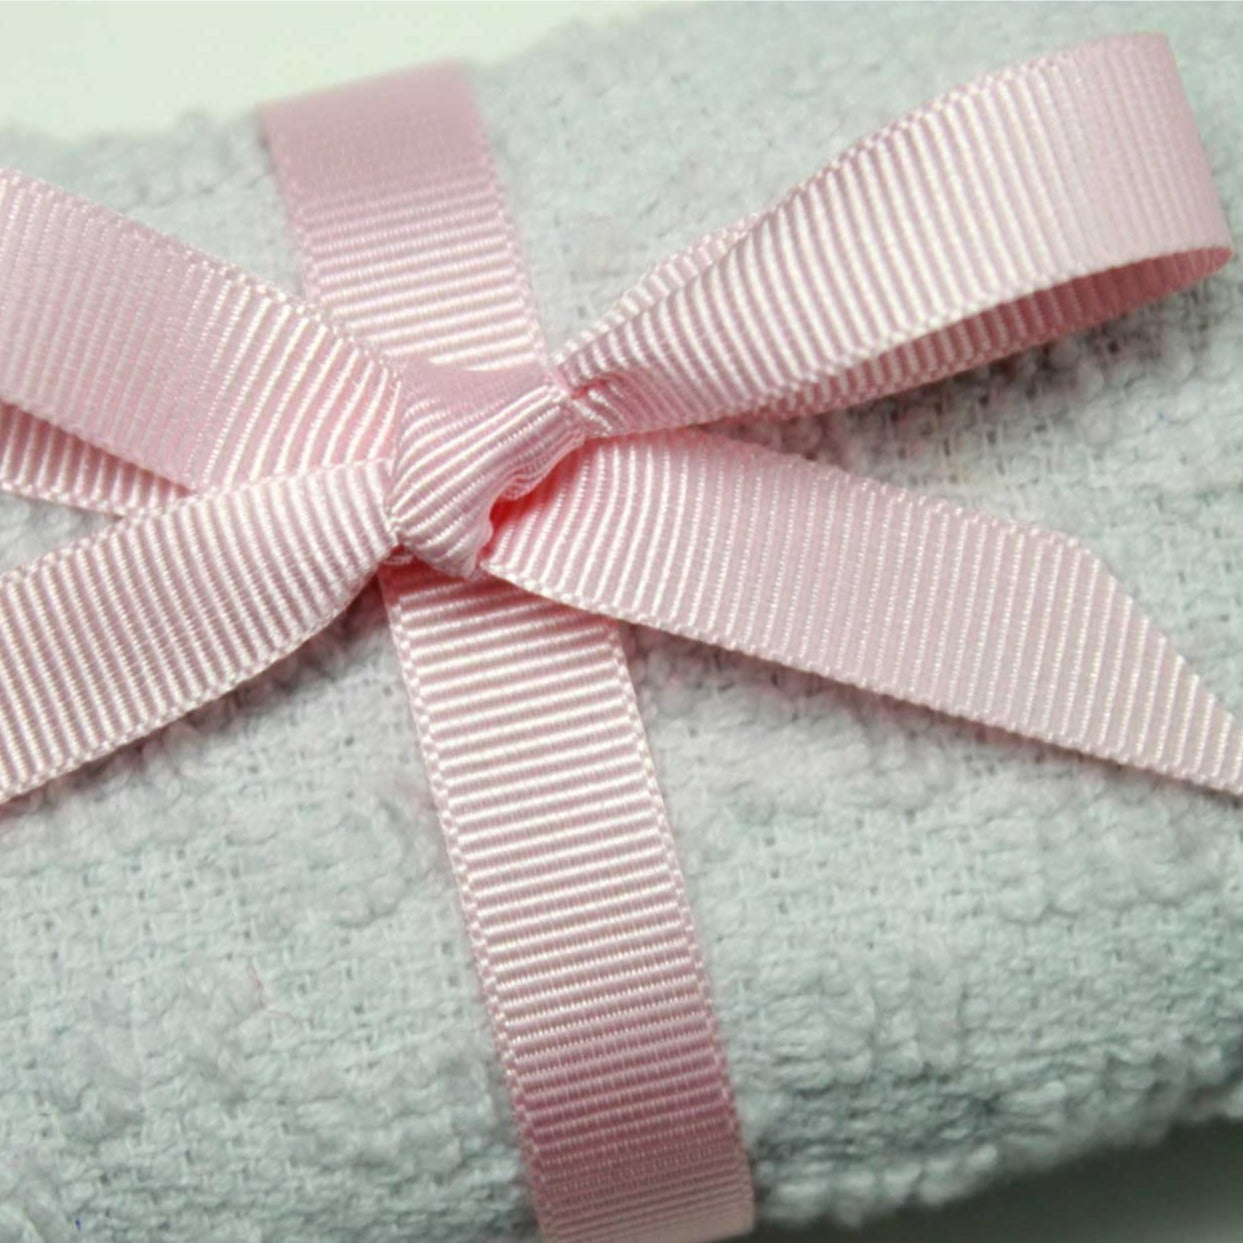 Berisfords Grosgrain Ribbon - Pink